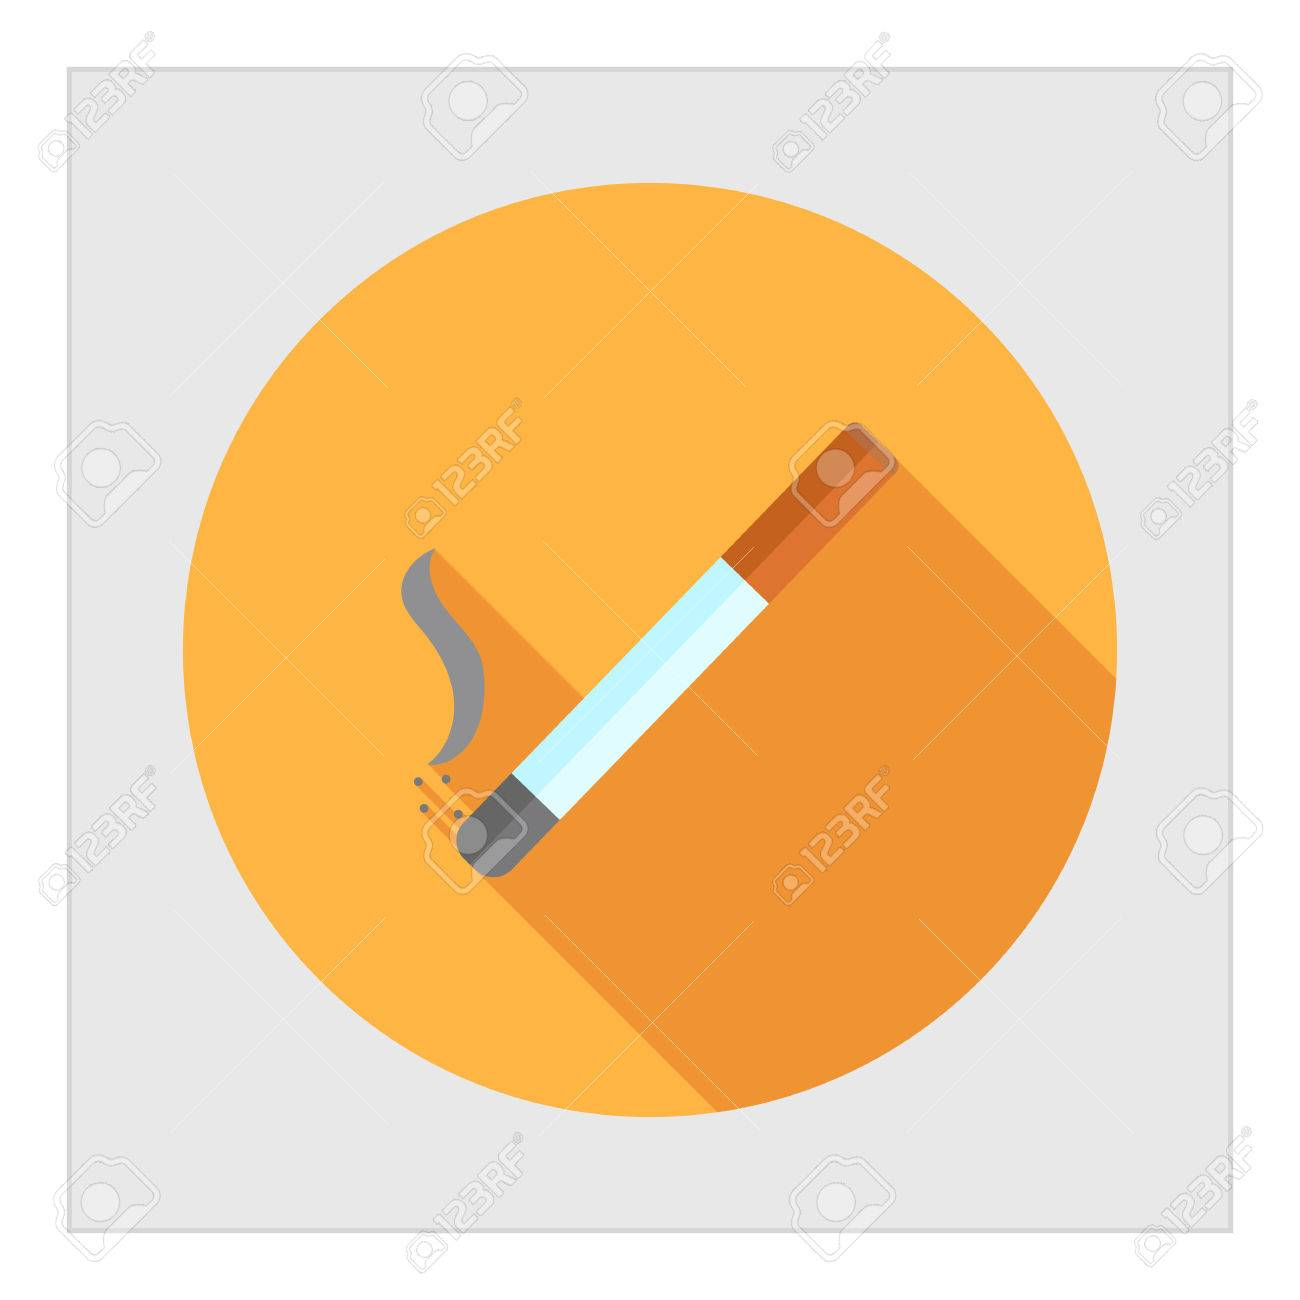 cigarette icon royalty free cliparts vectors and stock illustration image 42196139 123rf com